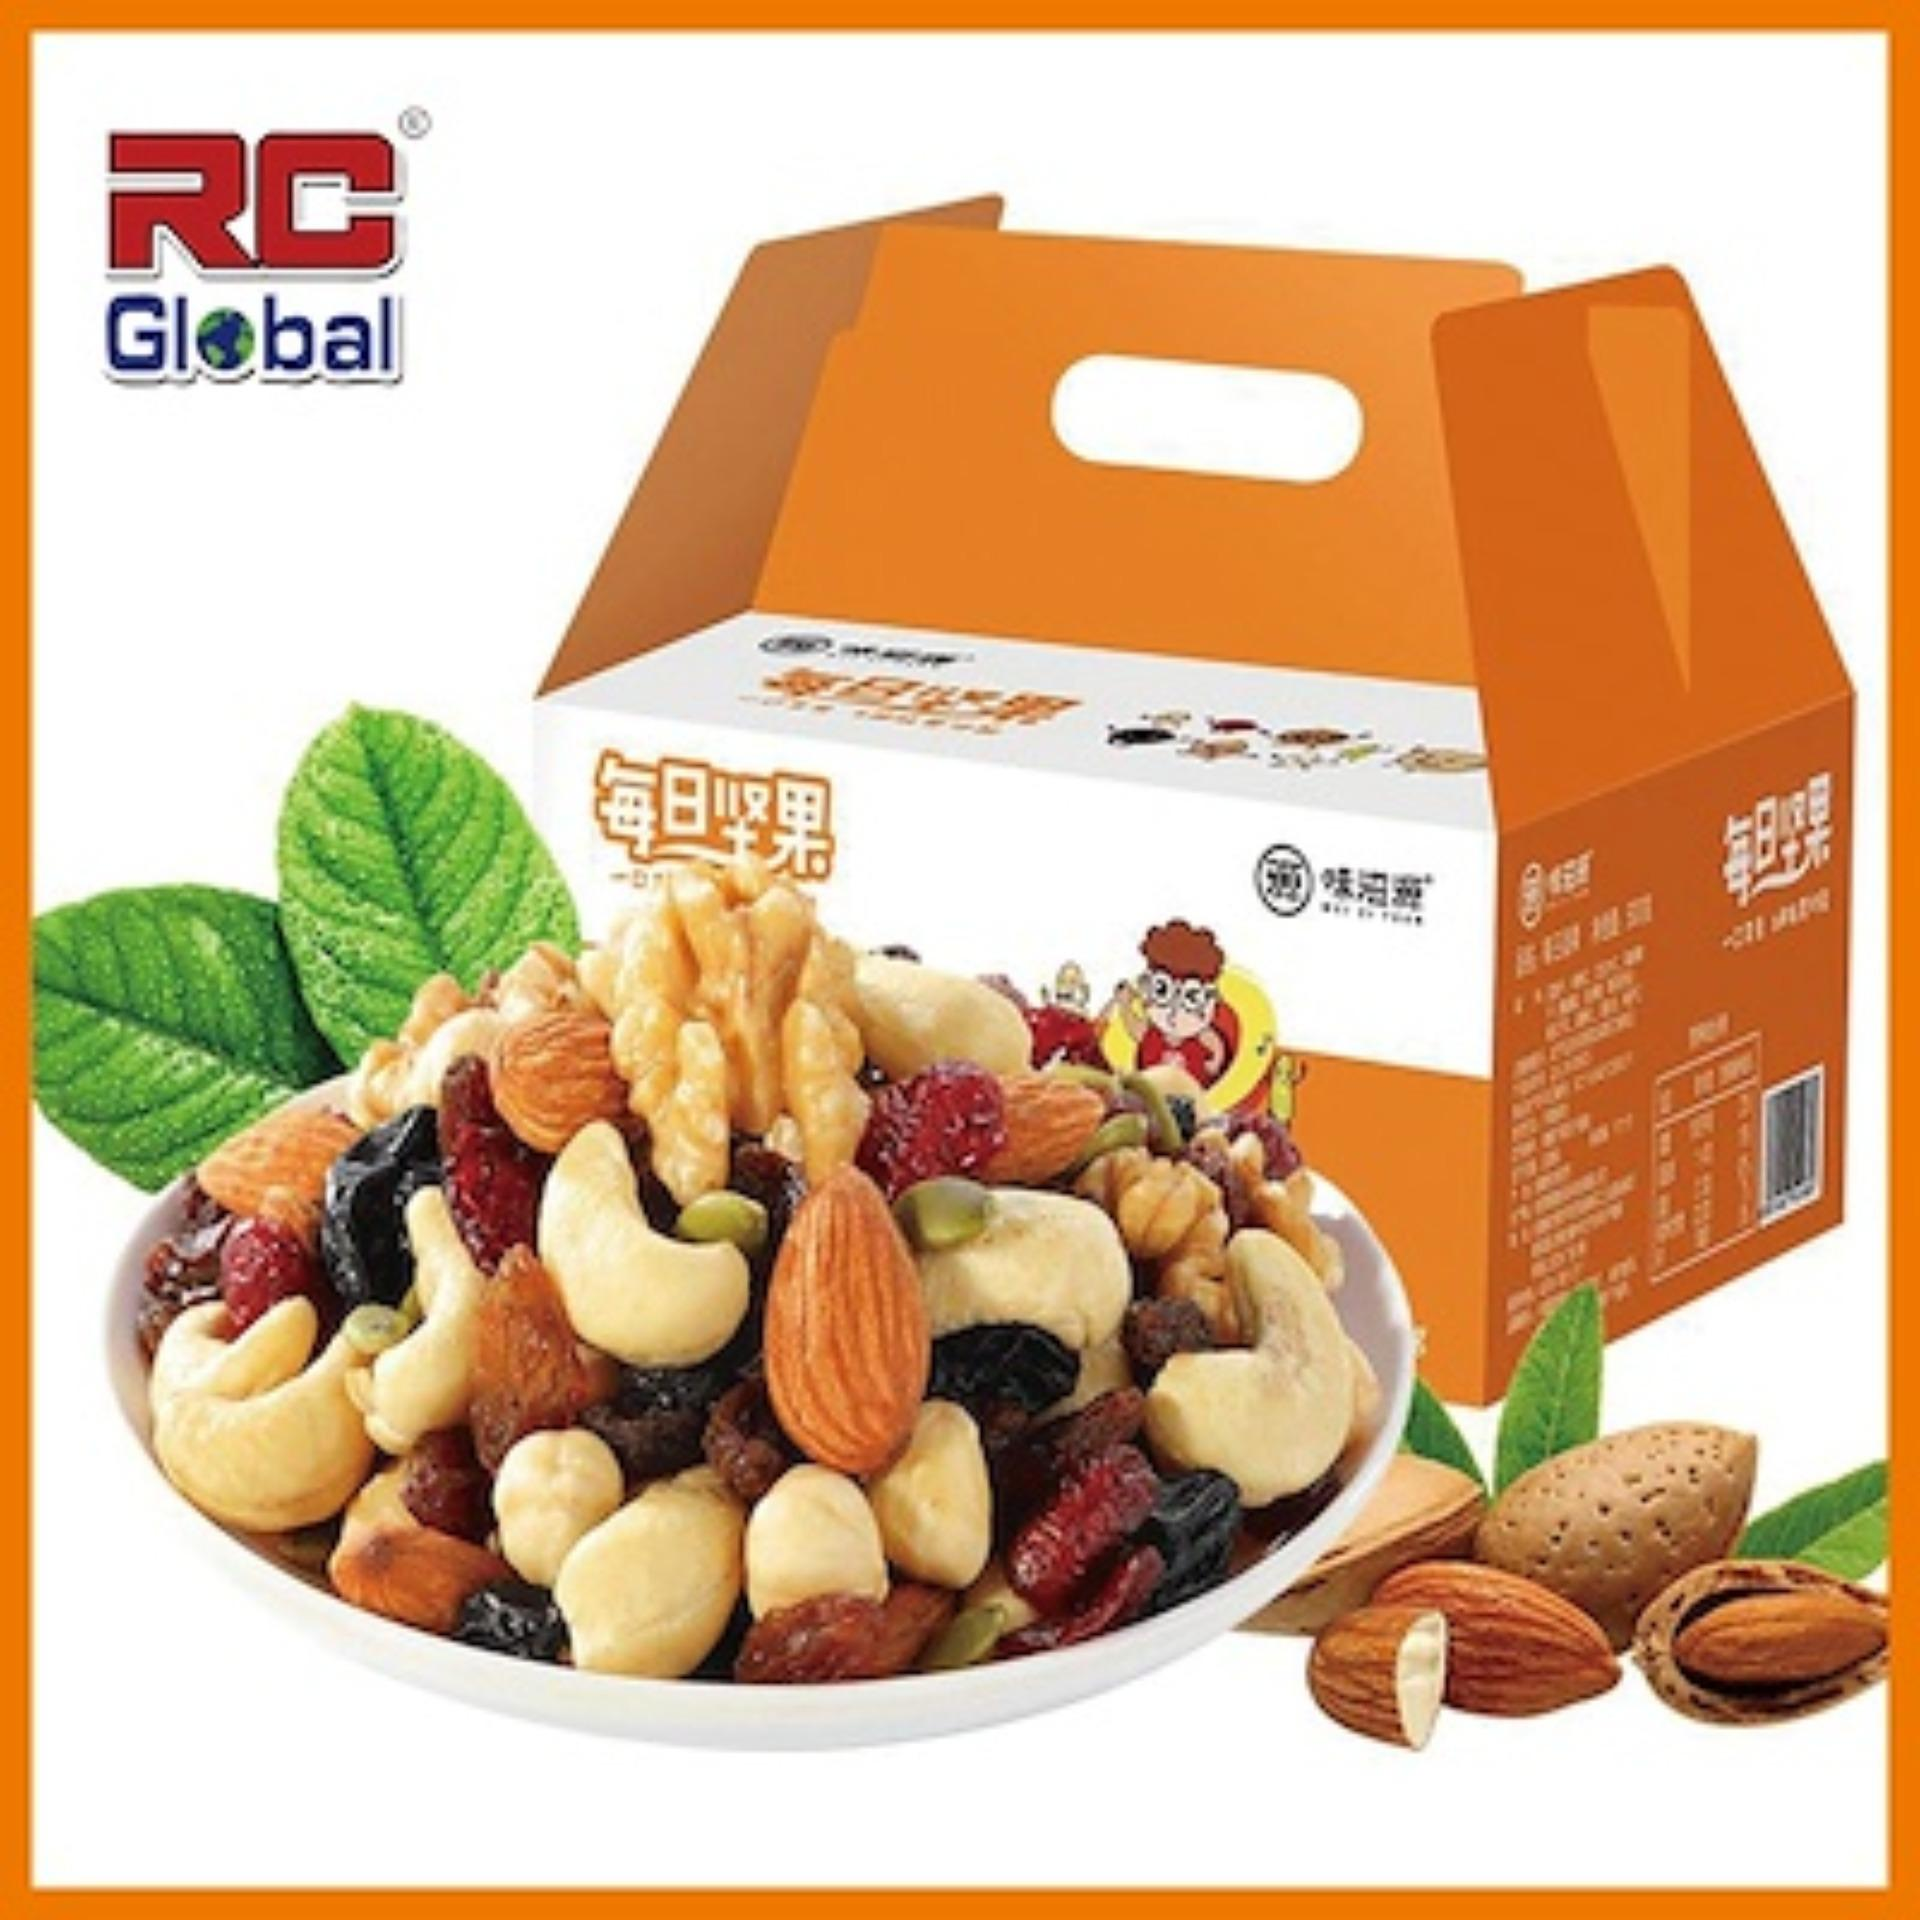 RC-Global Premium Daily Nuts / Mixed Nuts / healthy foods / Finger Foods /  Healthy snacks / Natural nuts (30 stanches x 20g) for all ages